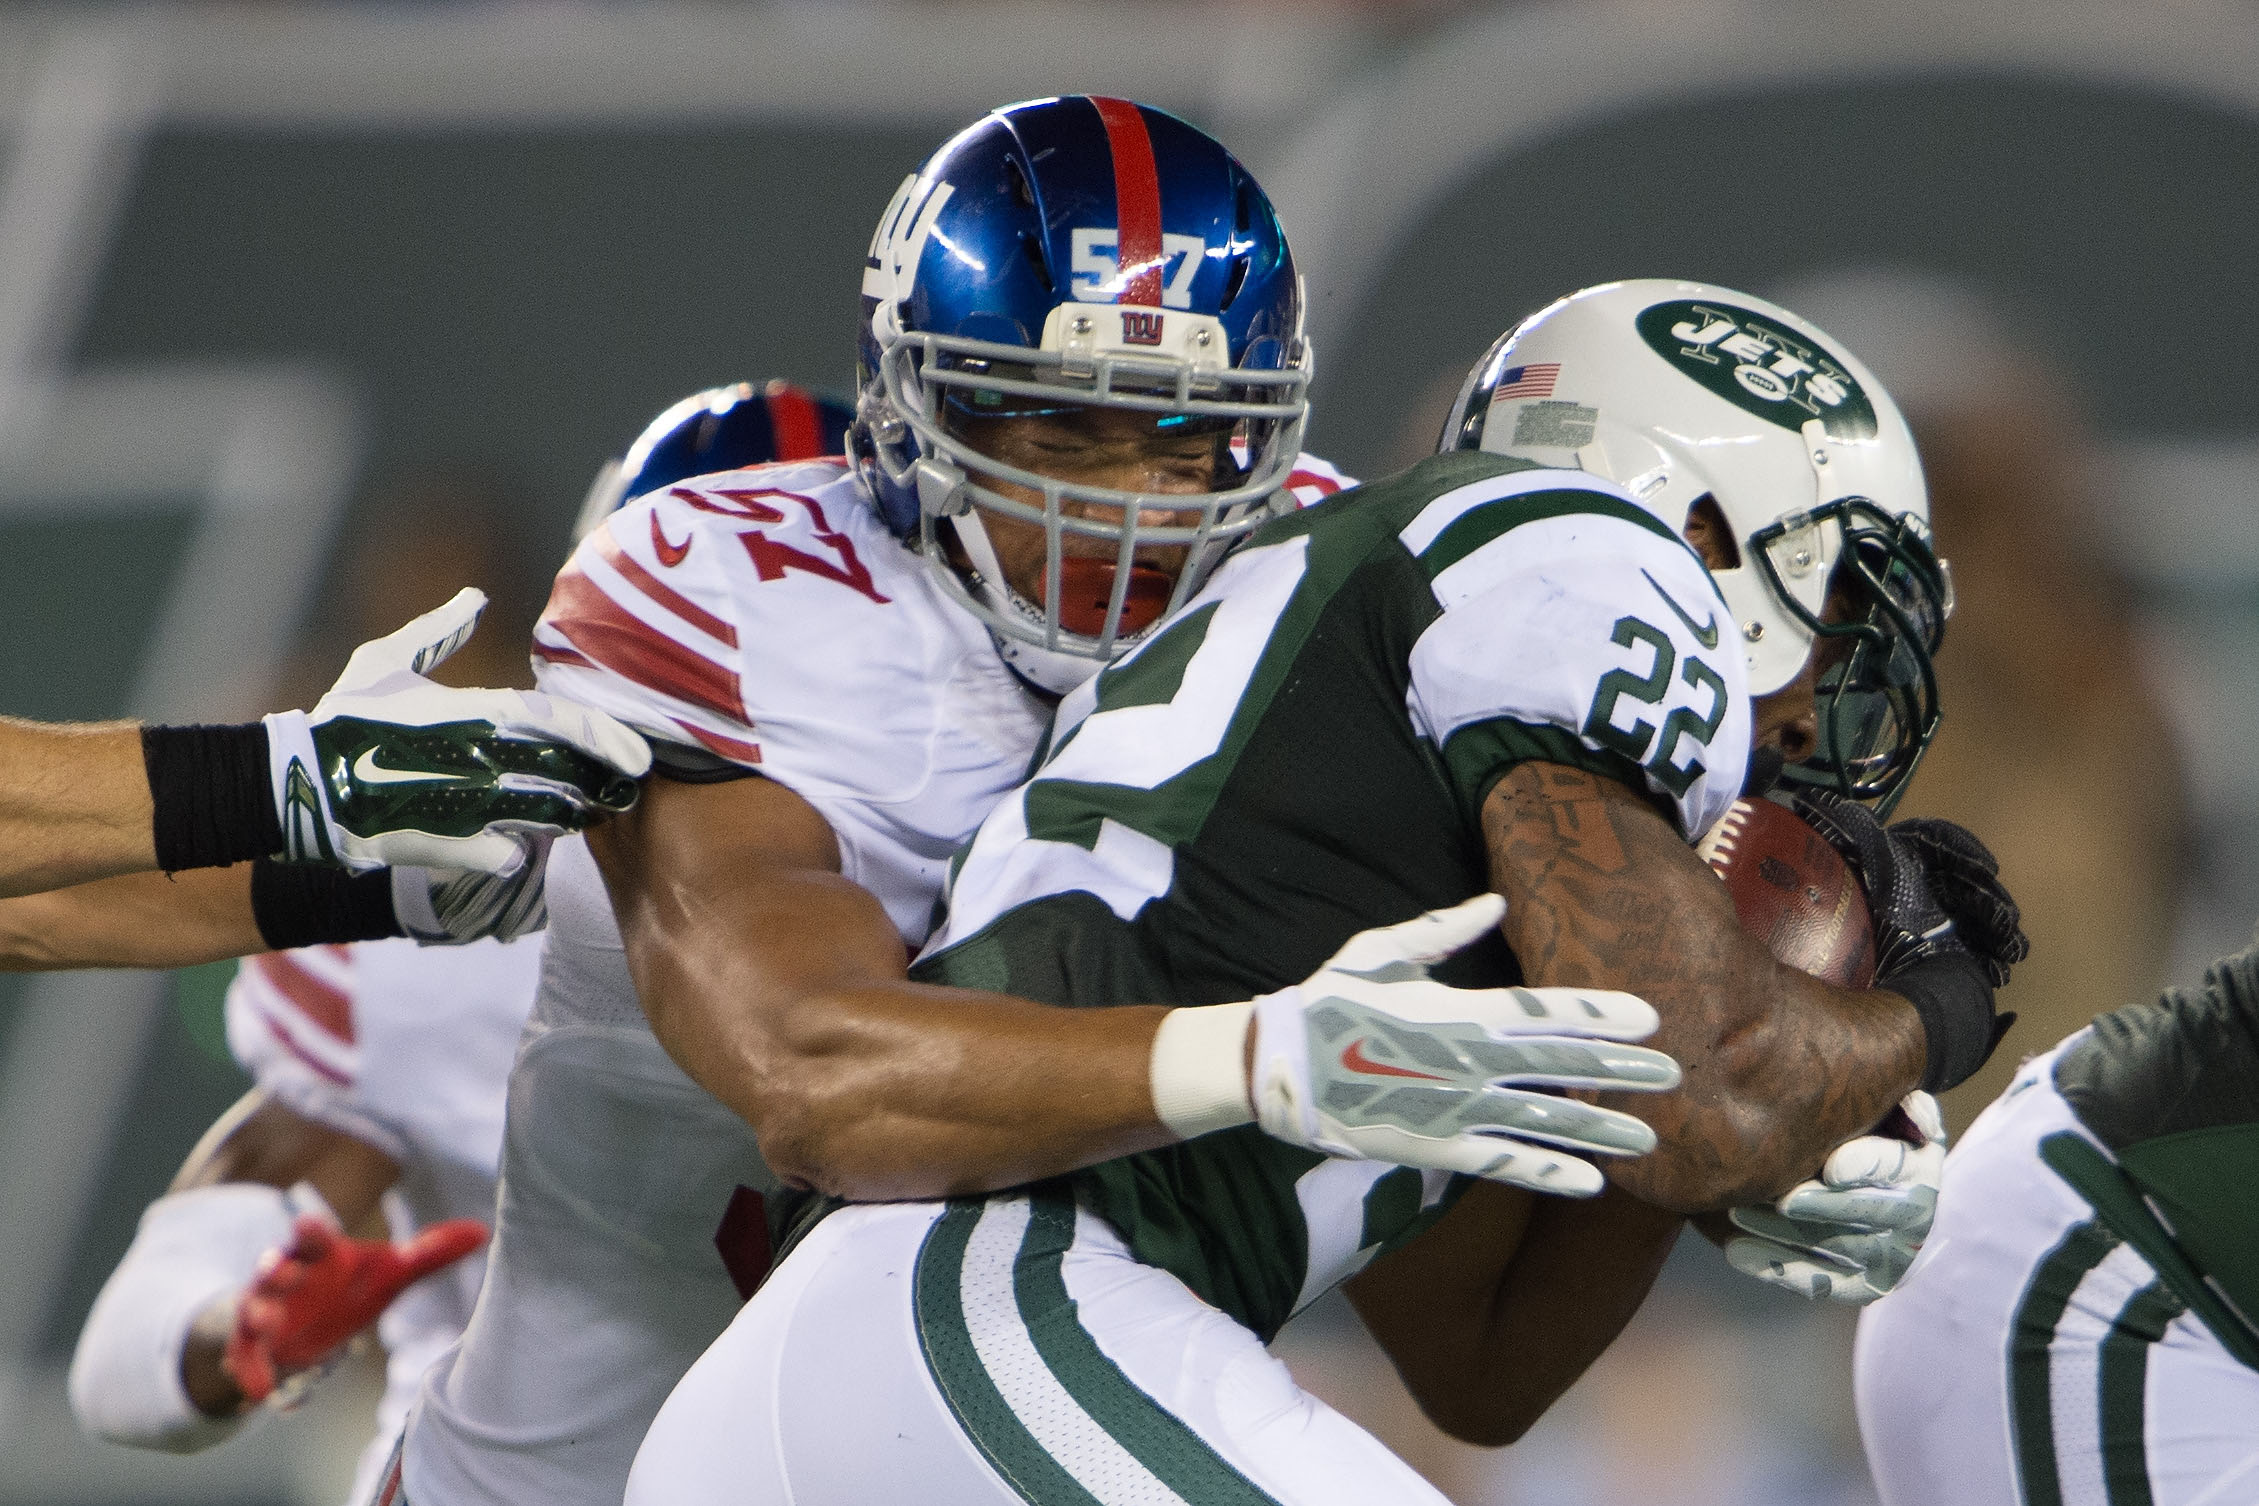 9503133-nfl-preseason-new-york-giants-at-new-york-jets-1